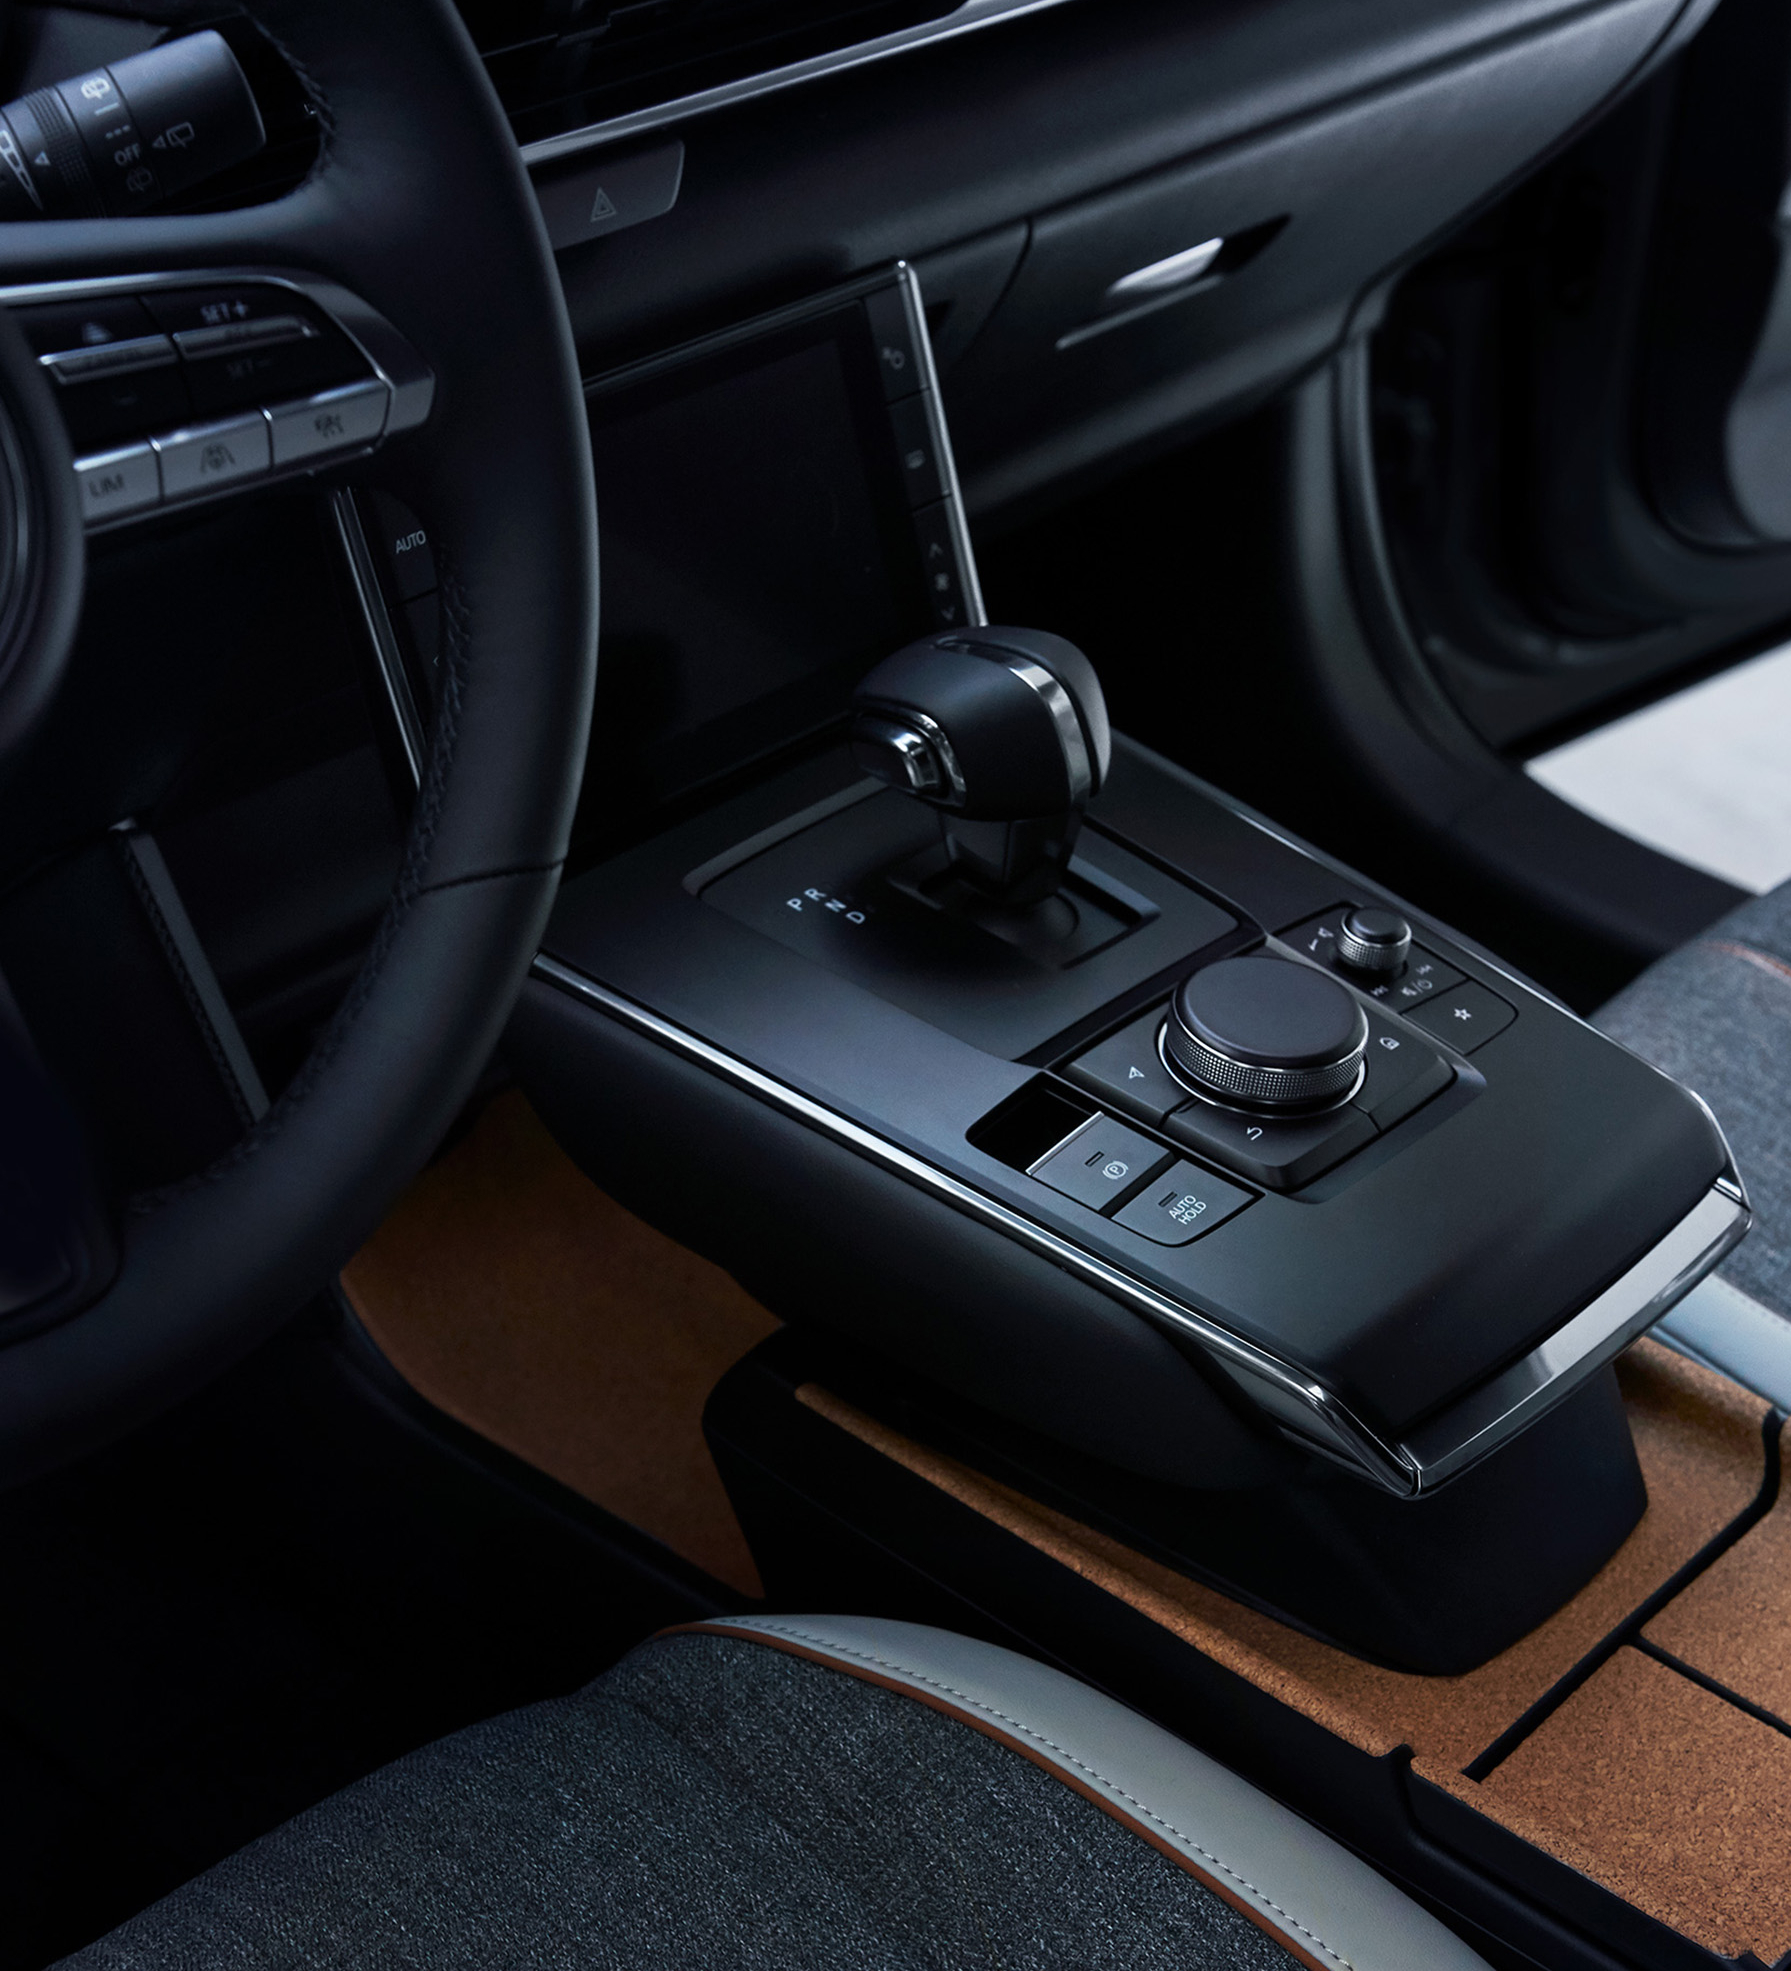 Mazda MX 30 Center Console with gear selector and multi function command knob